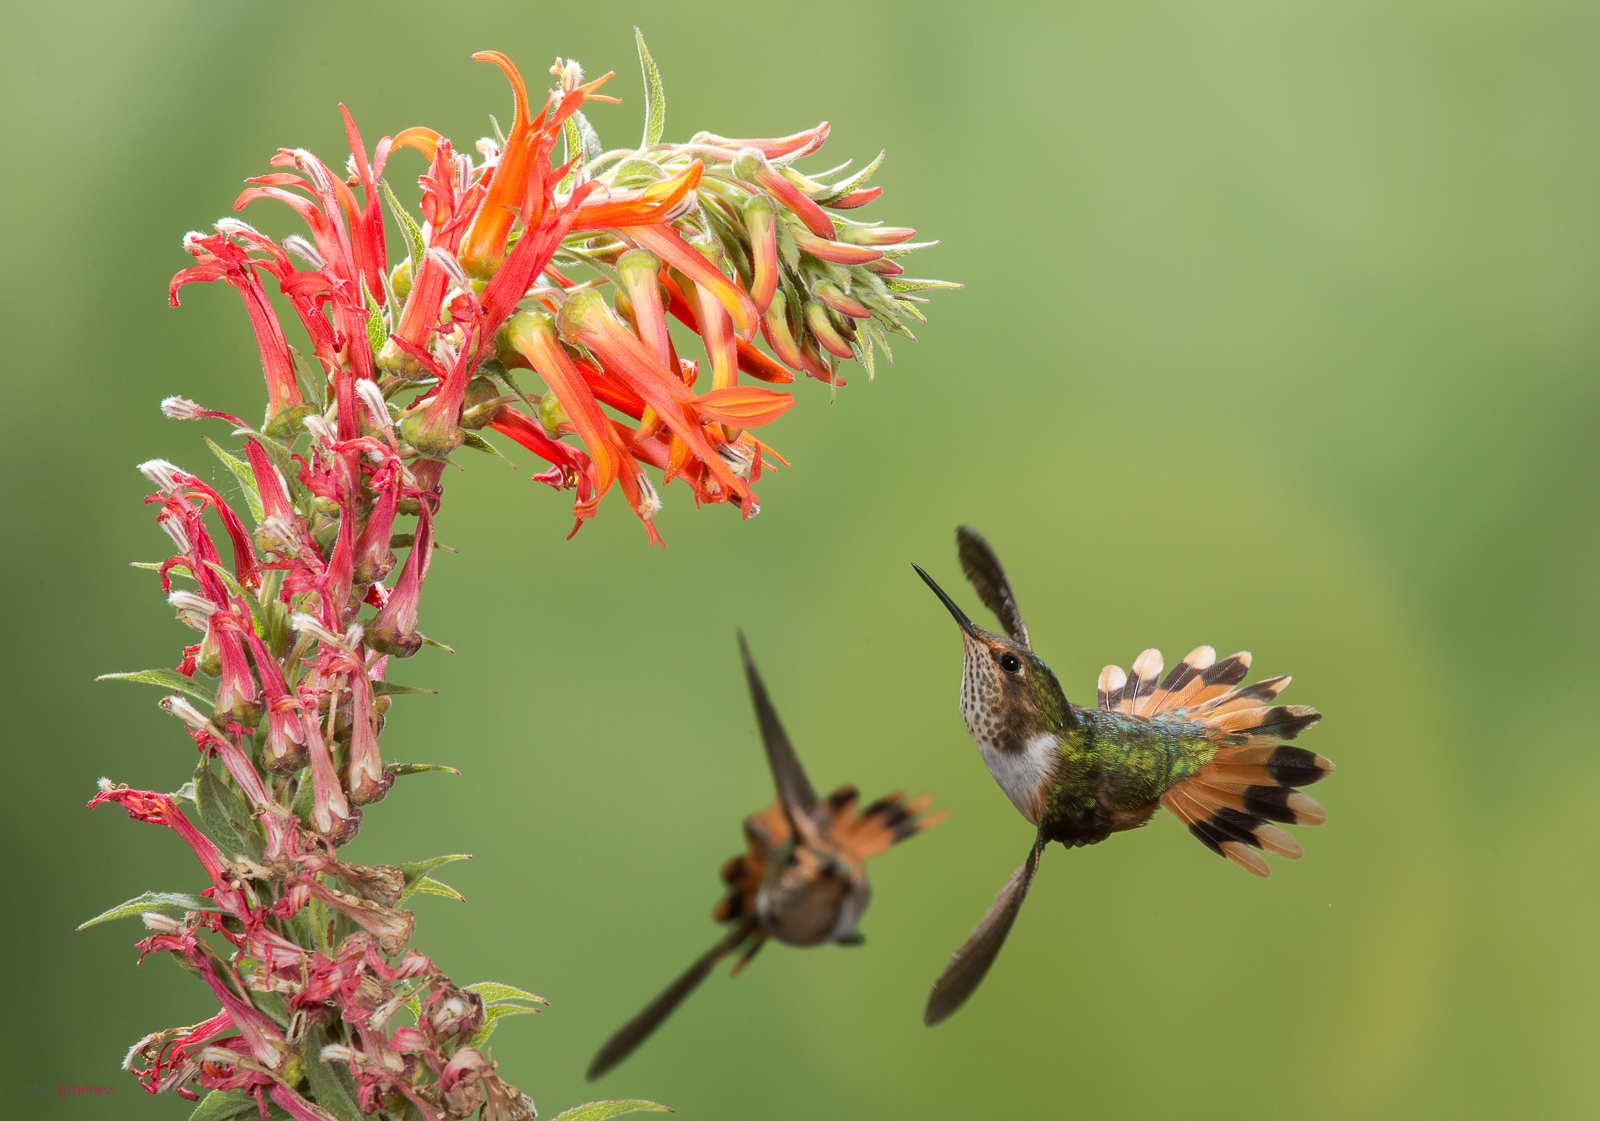 Scintillant Hummingbird (Selasphorus scintilla) females feeding from flowers in flight the Highlands of Costa Rica.